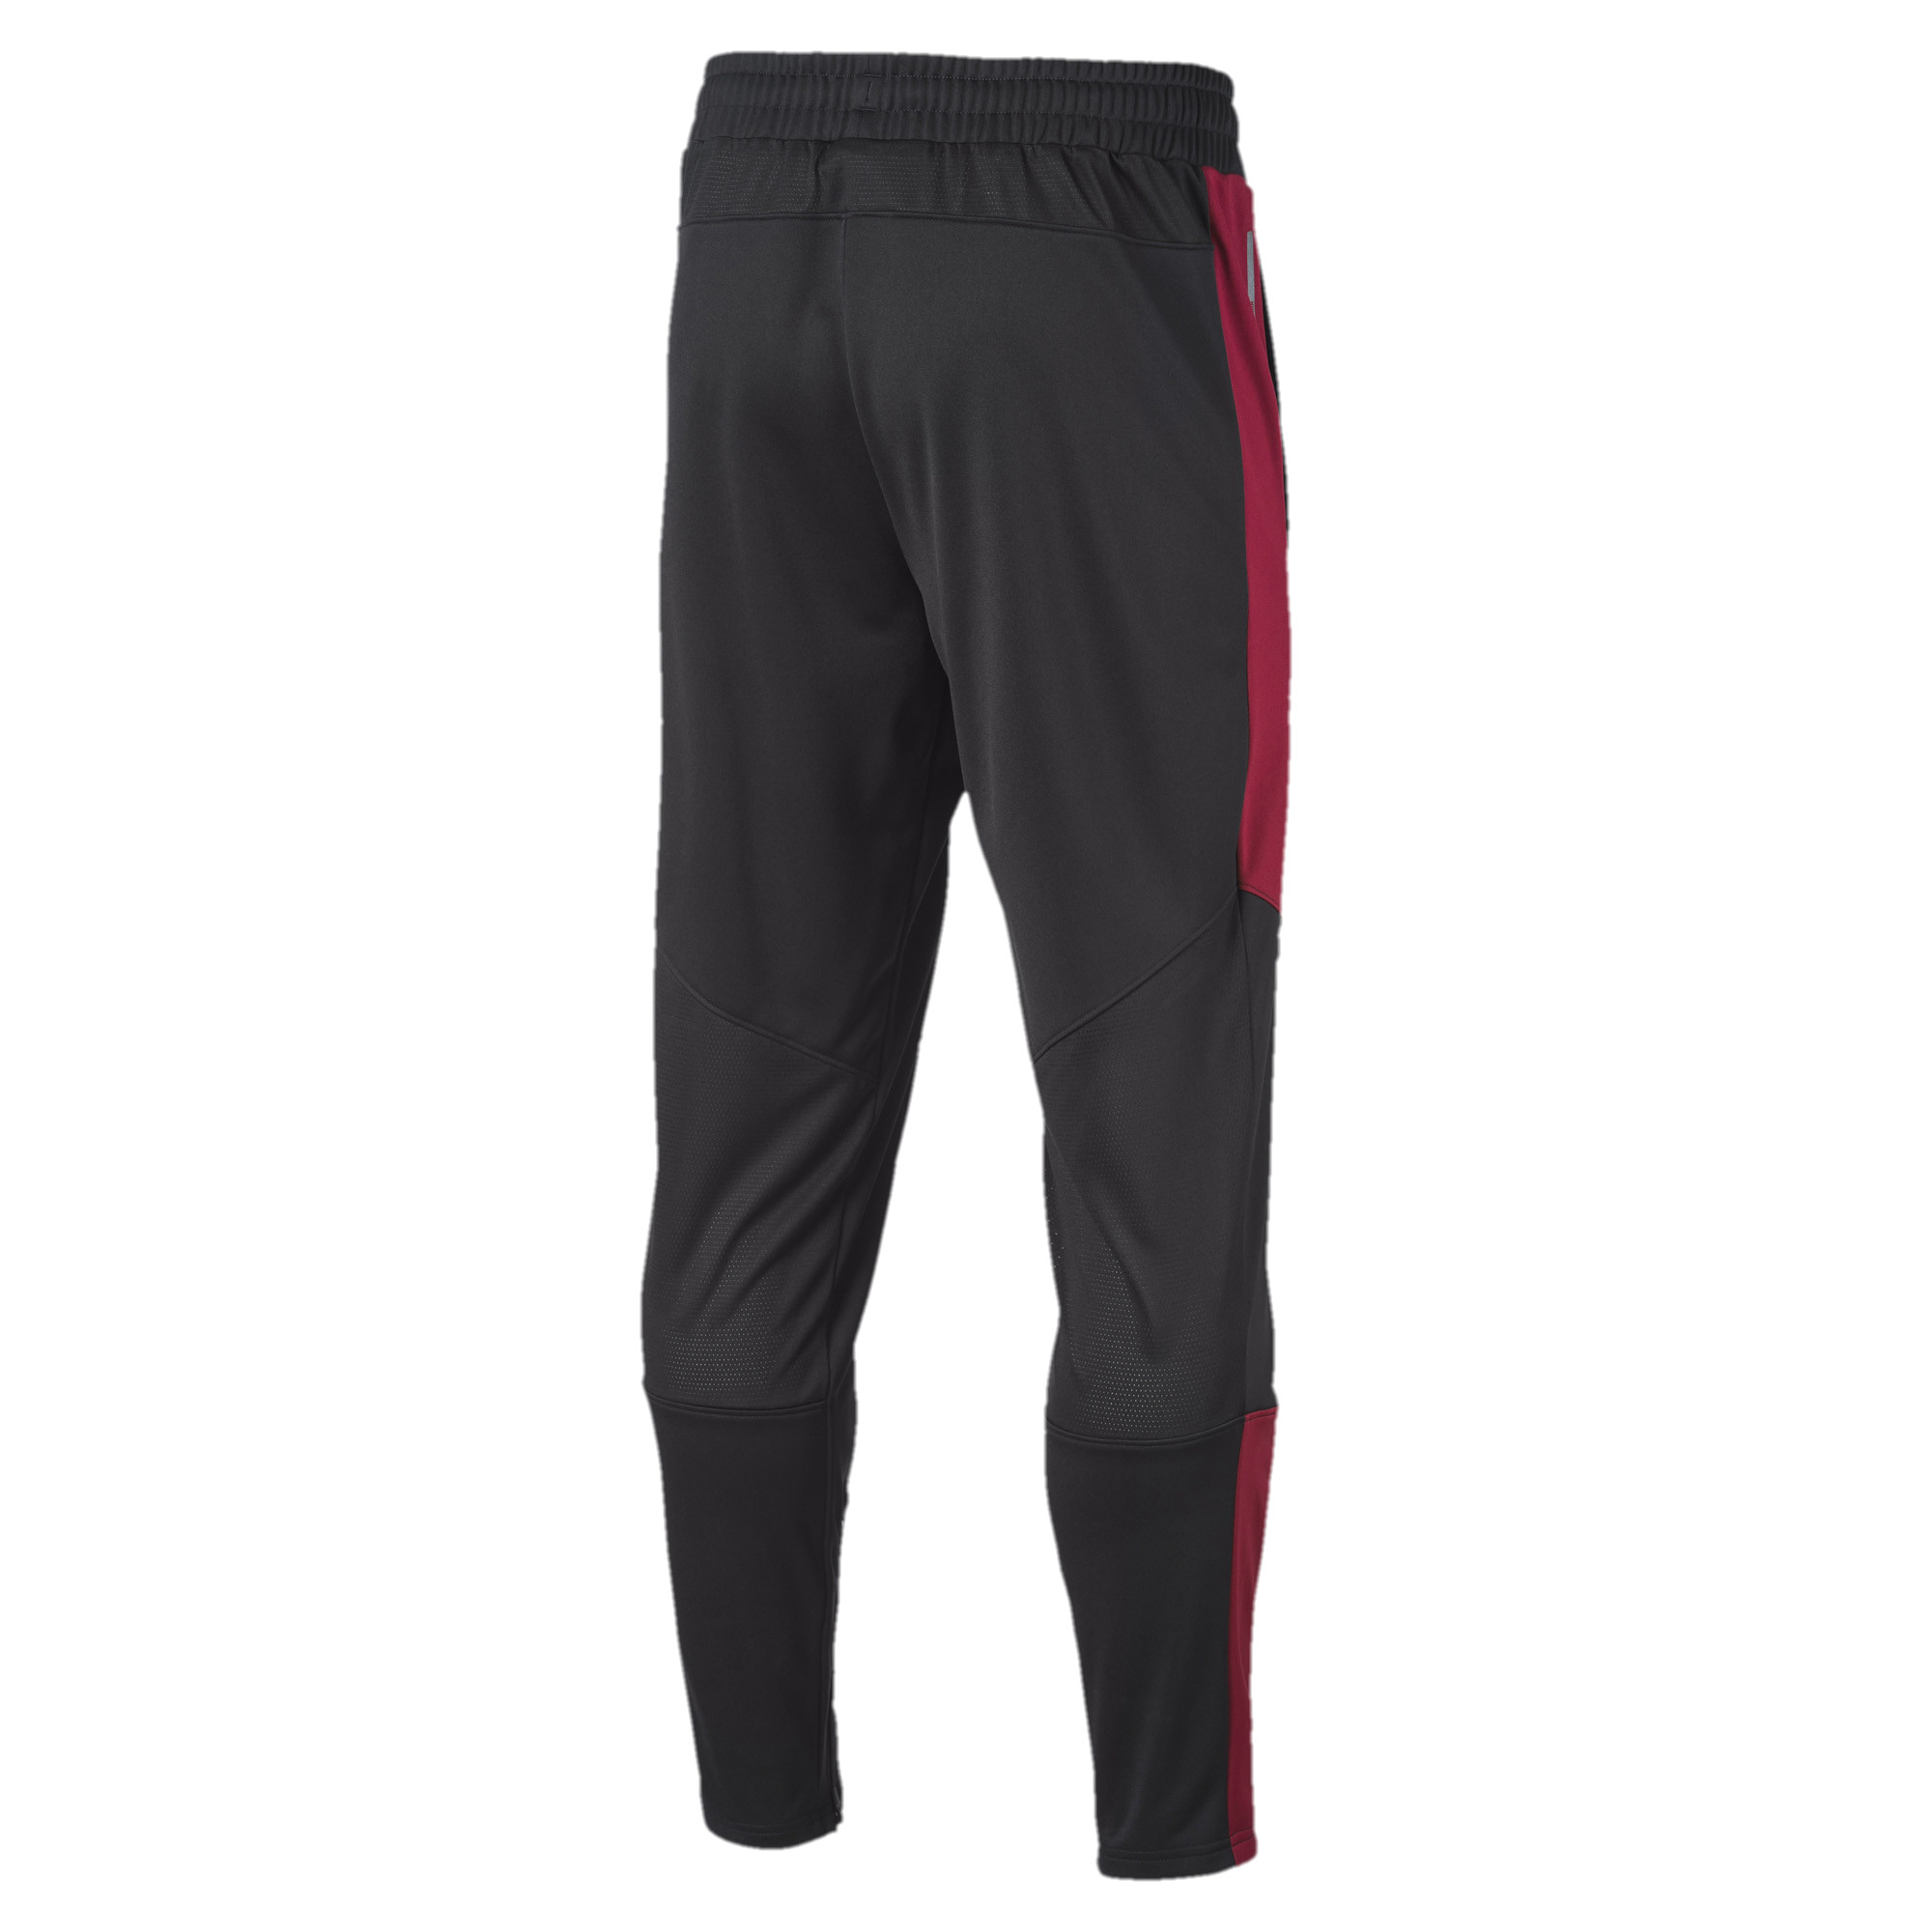 PUMA-Men-039-s-Blaster-Pants thumbnail 7